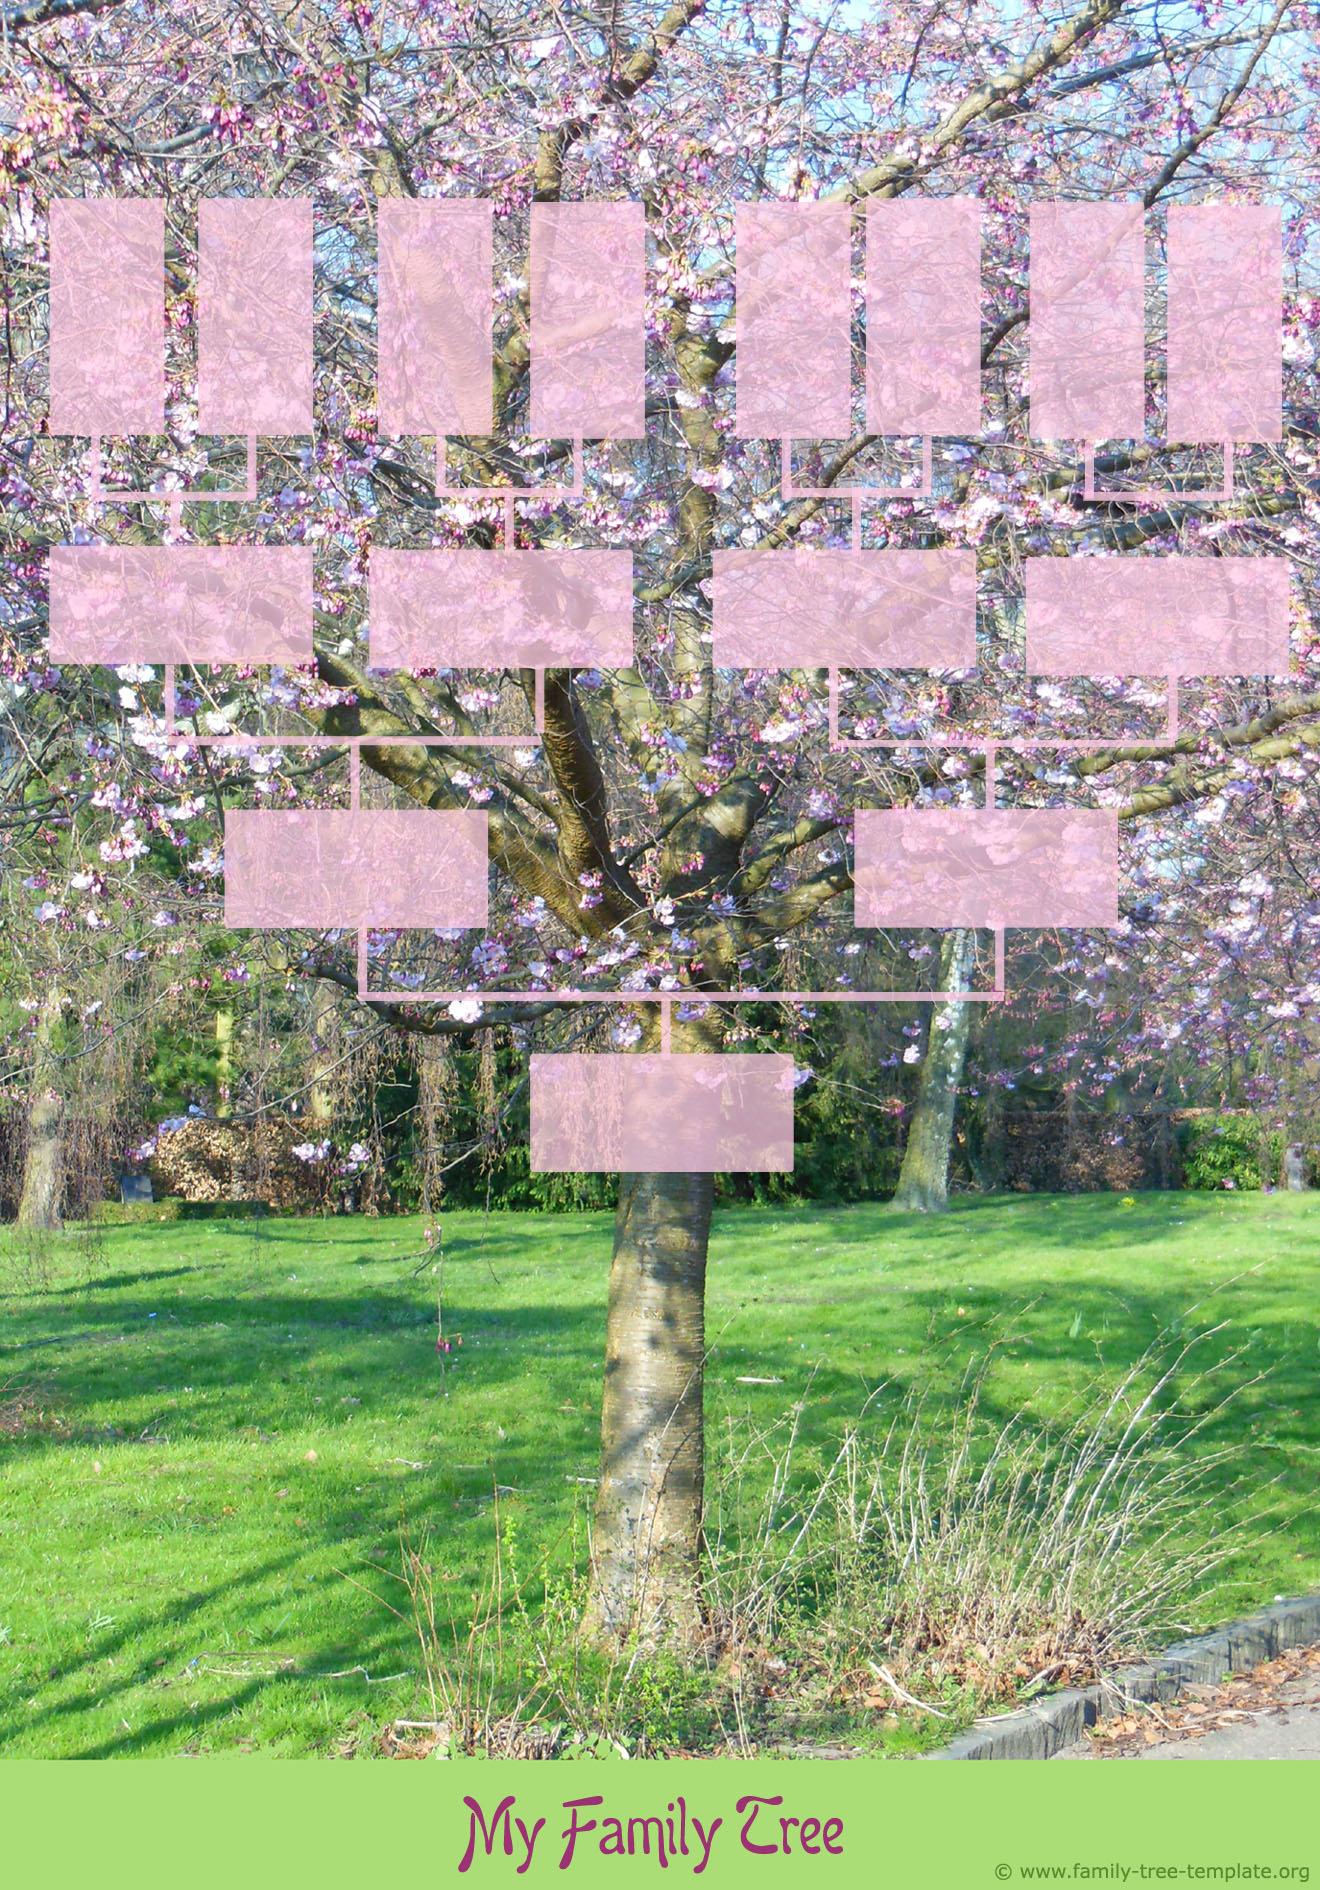 Printable family tree template design. Spring tree with small pink flowers.